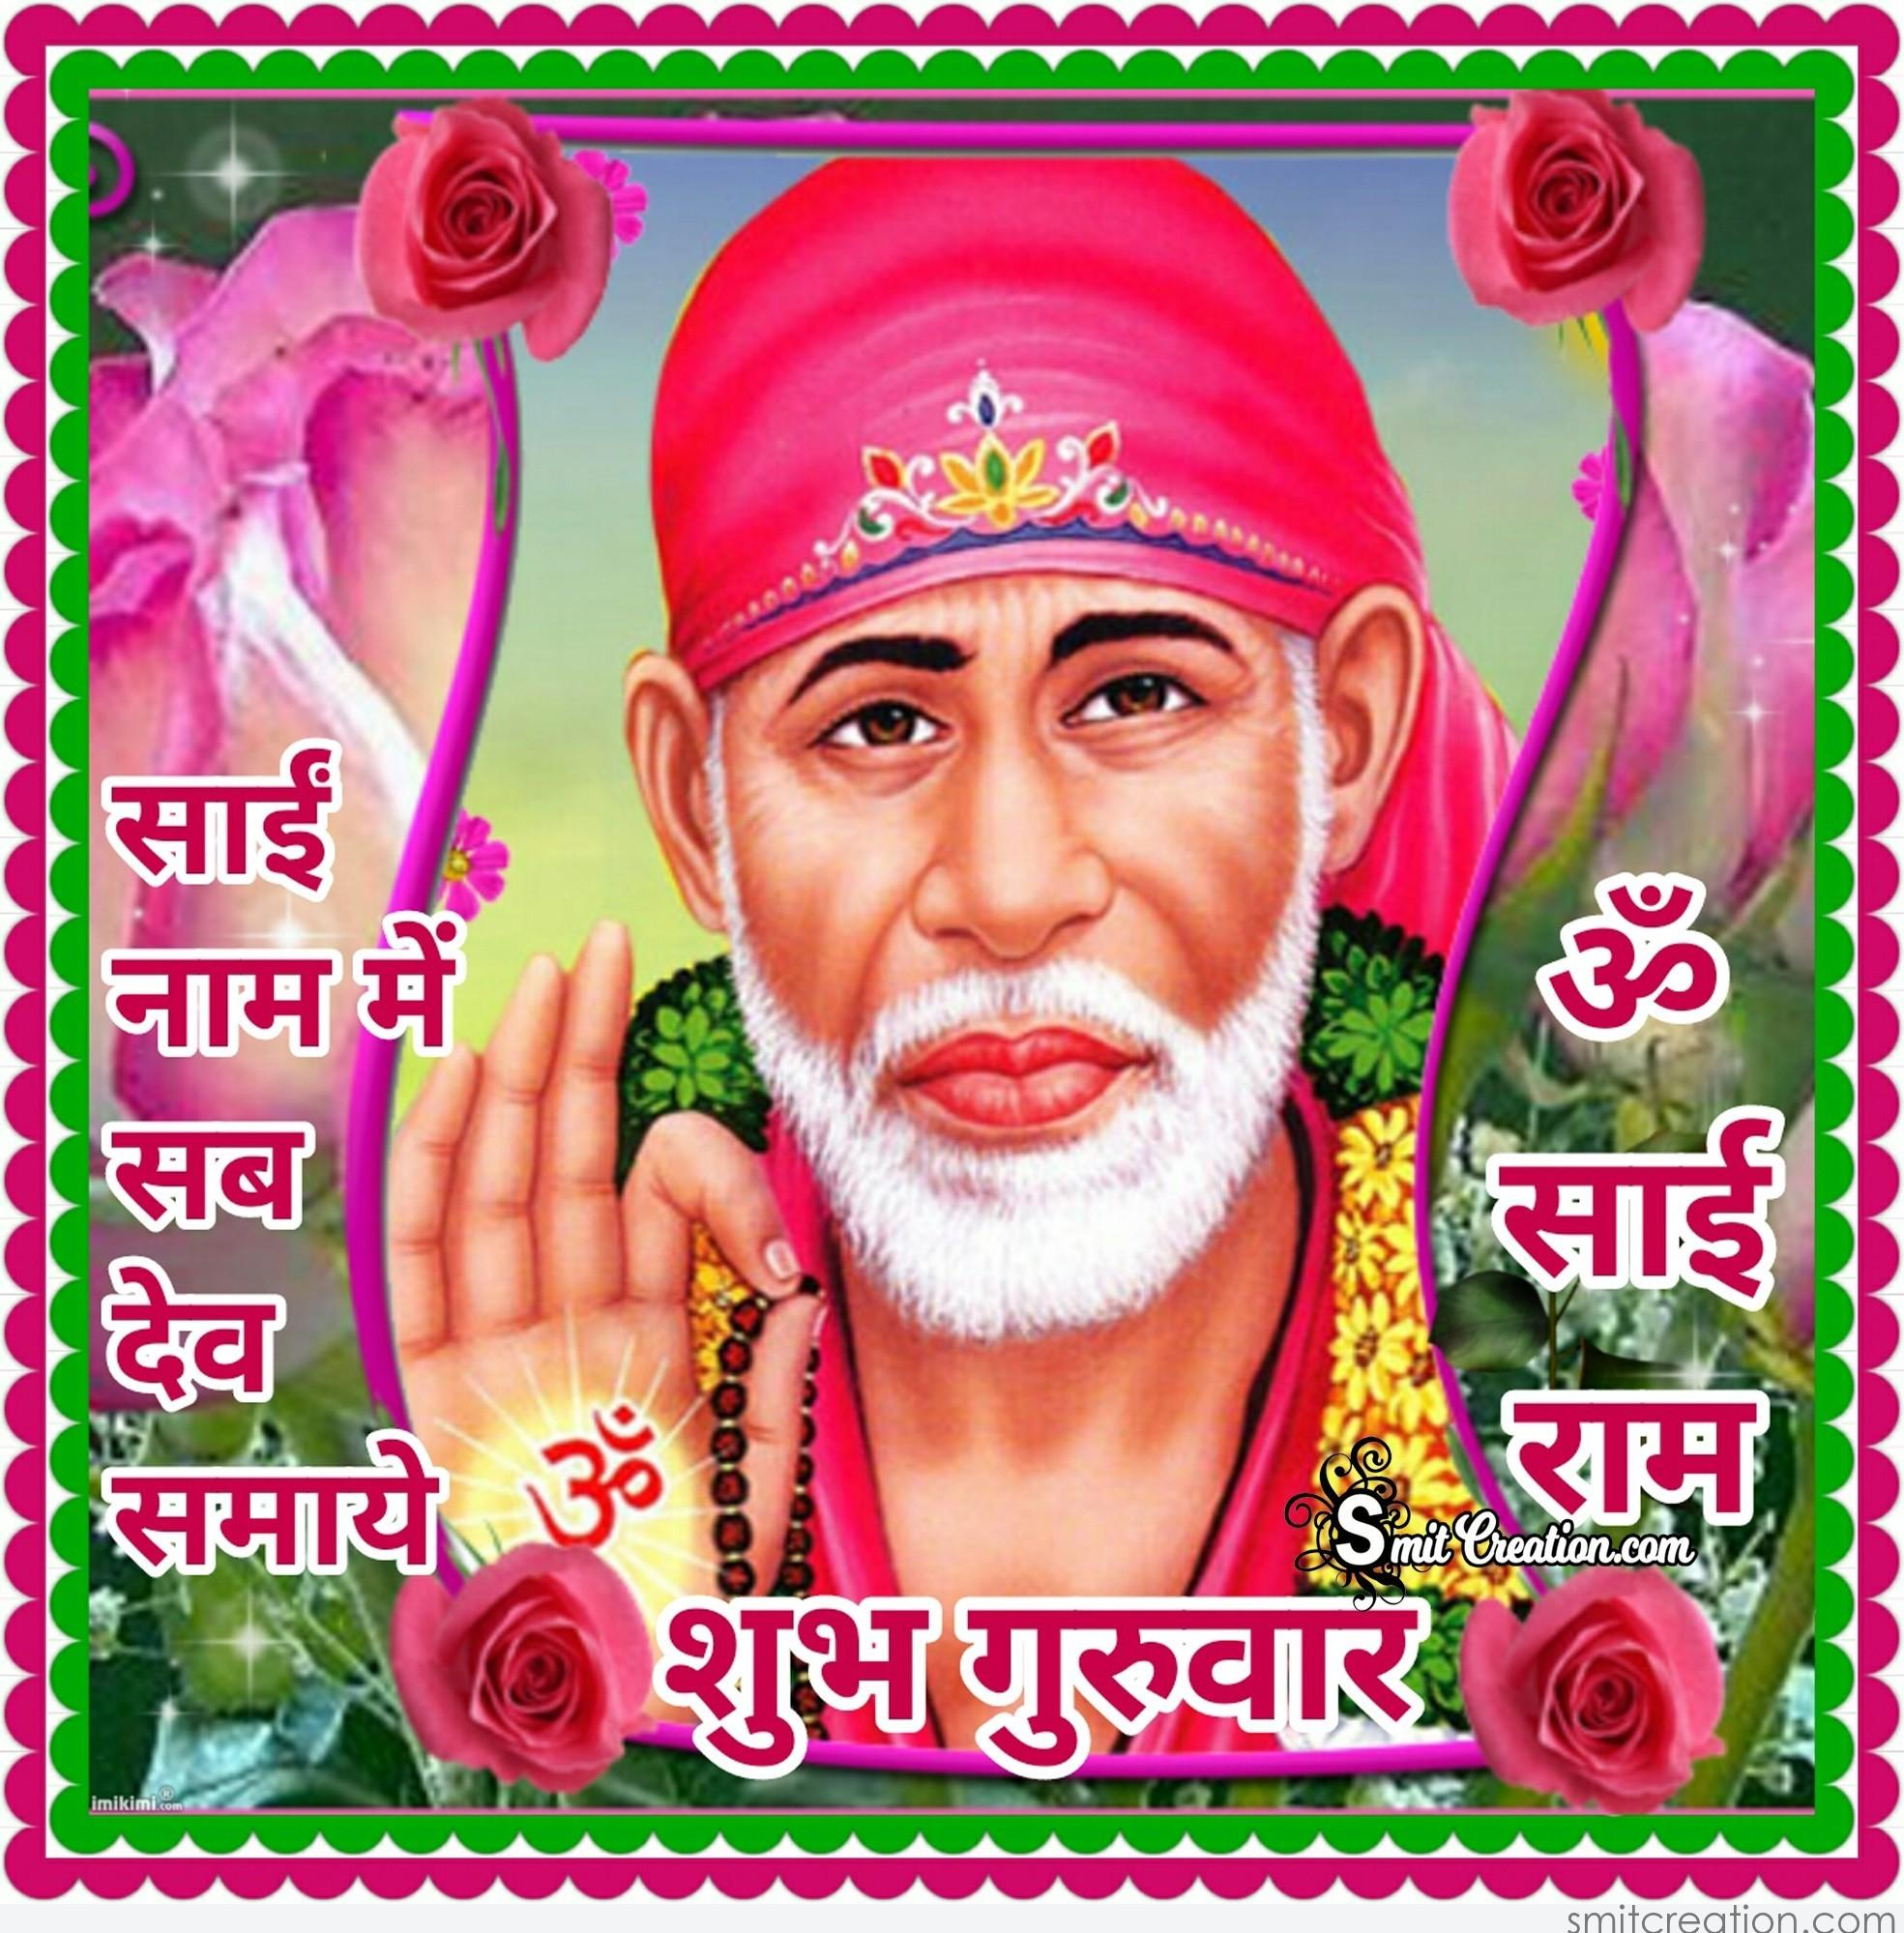 Suprabhat Hindi Images Pictures and Graphics